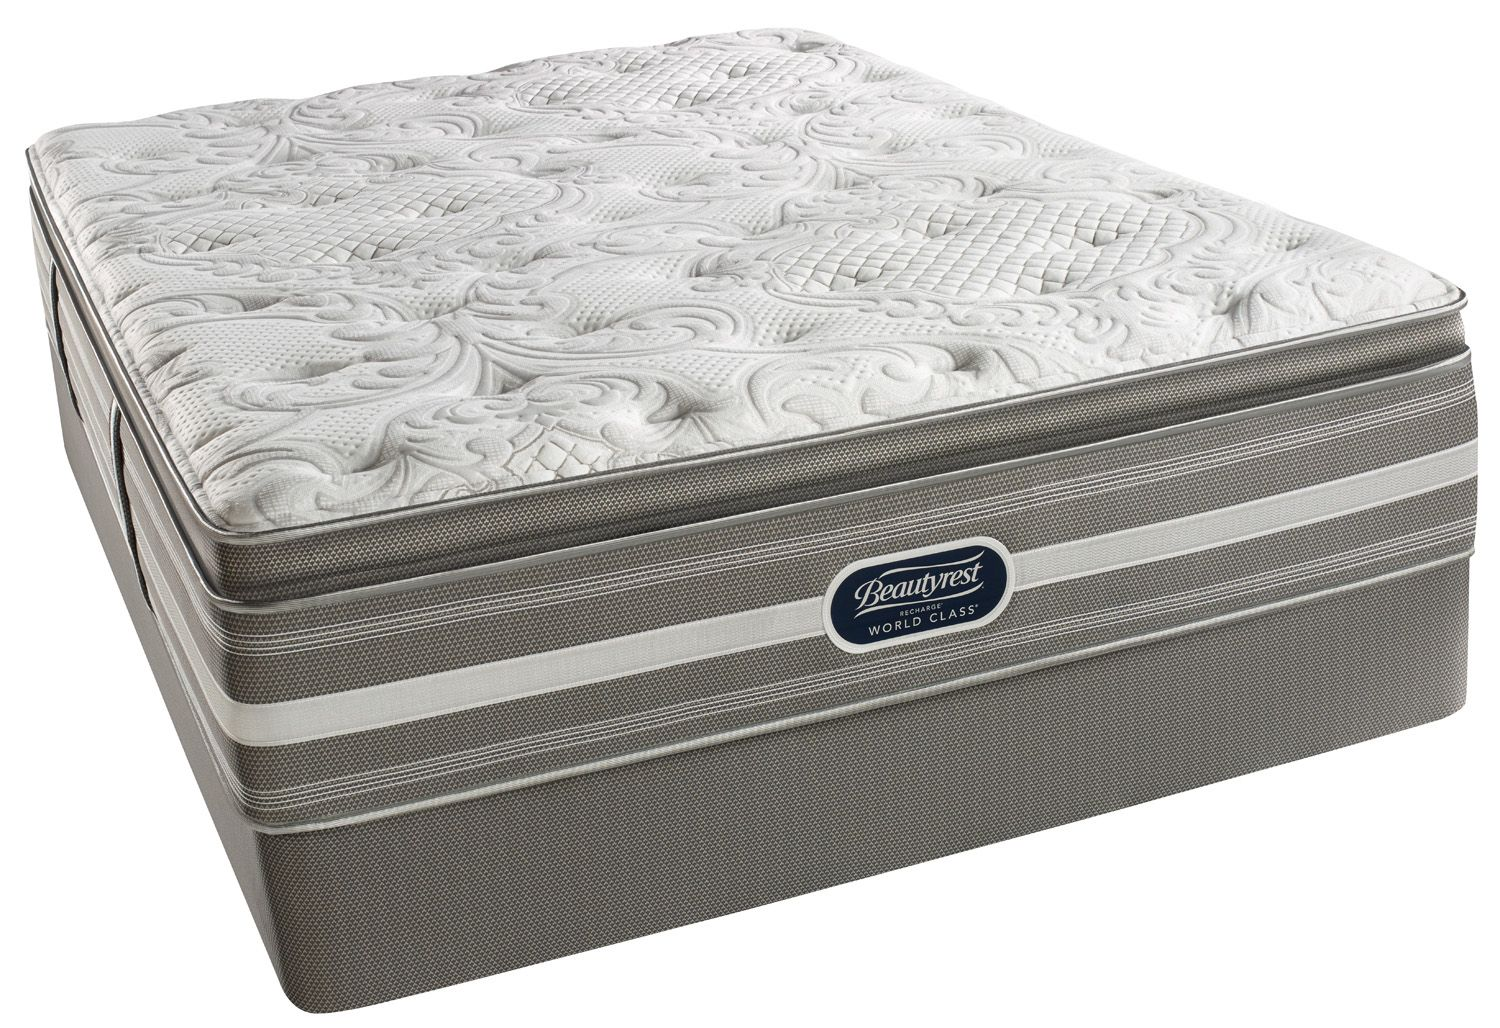 Beautyrest Recharge Plush Pt Mattress 7003618631010